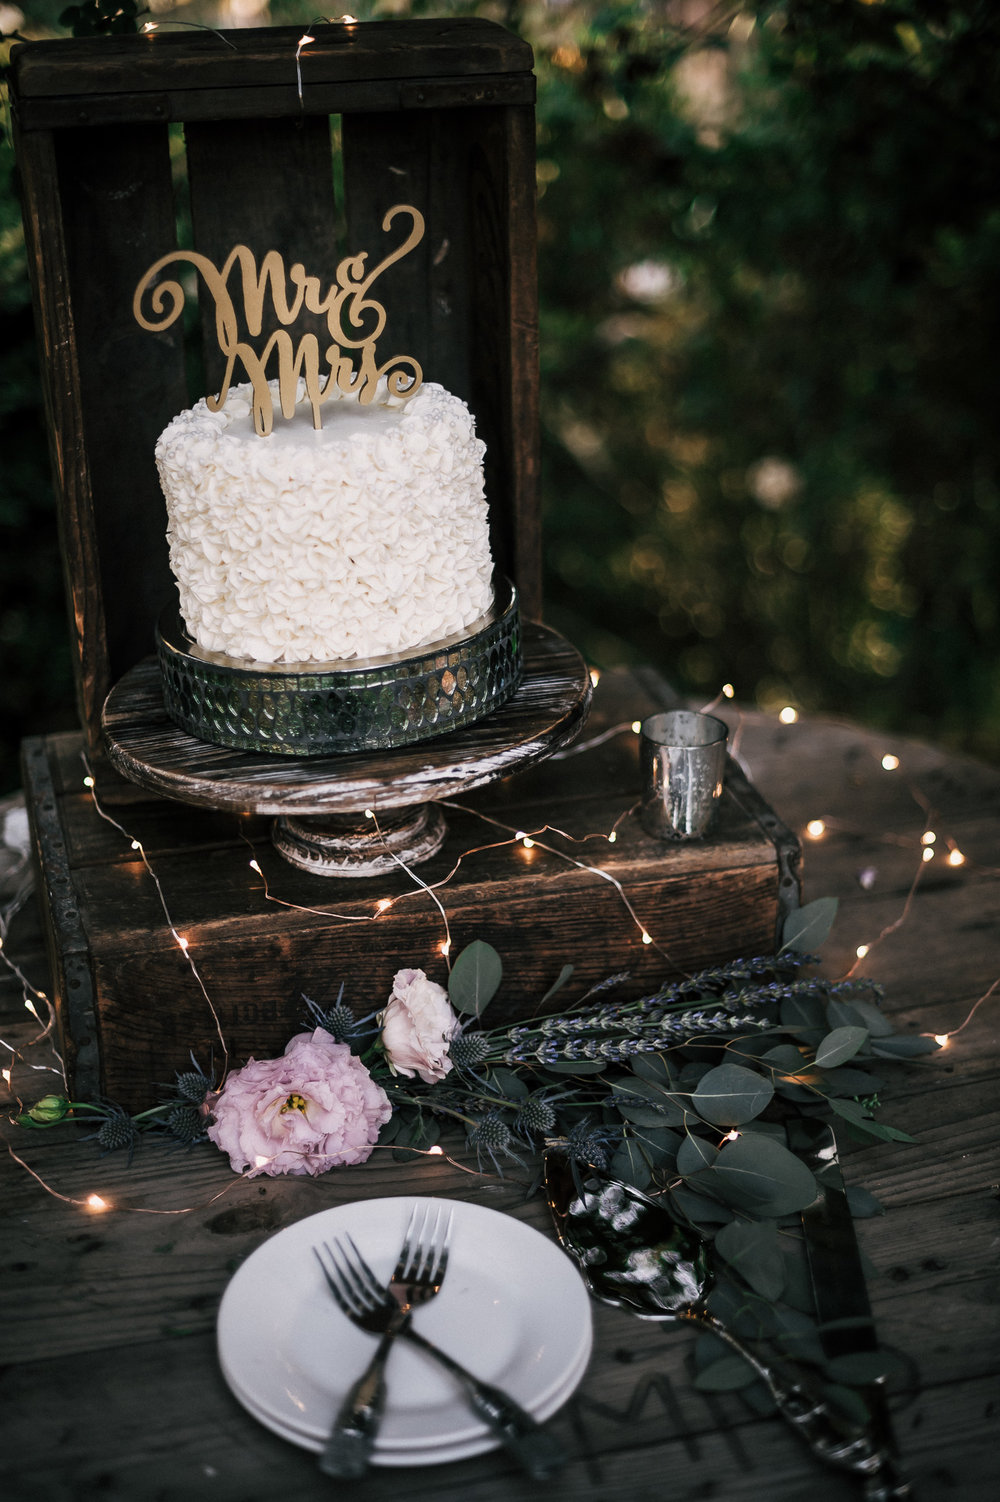 rustic wedding cakes for your country wedding.